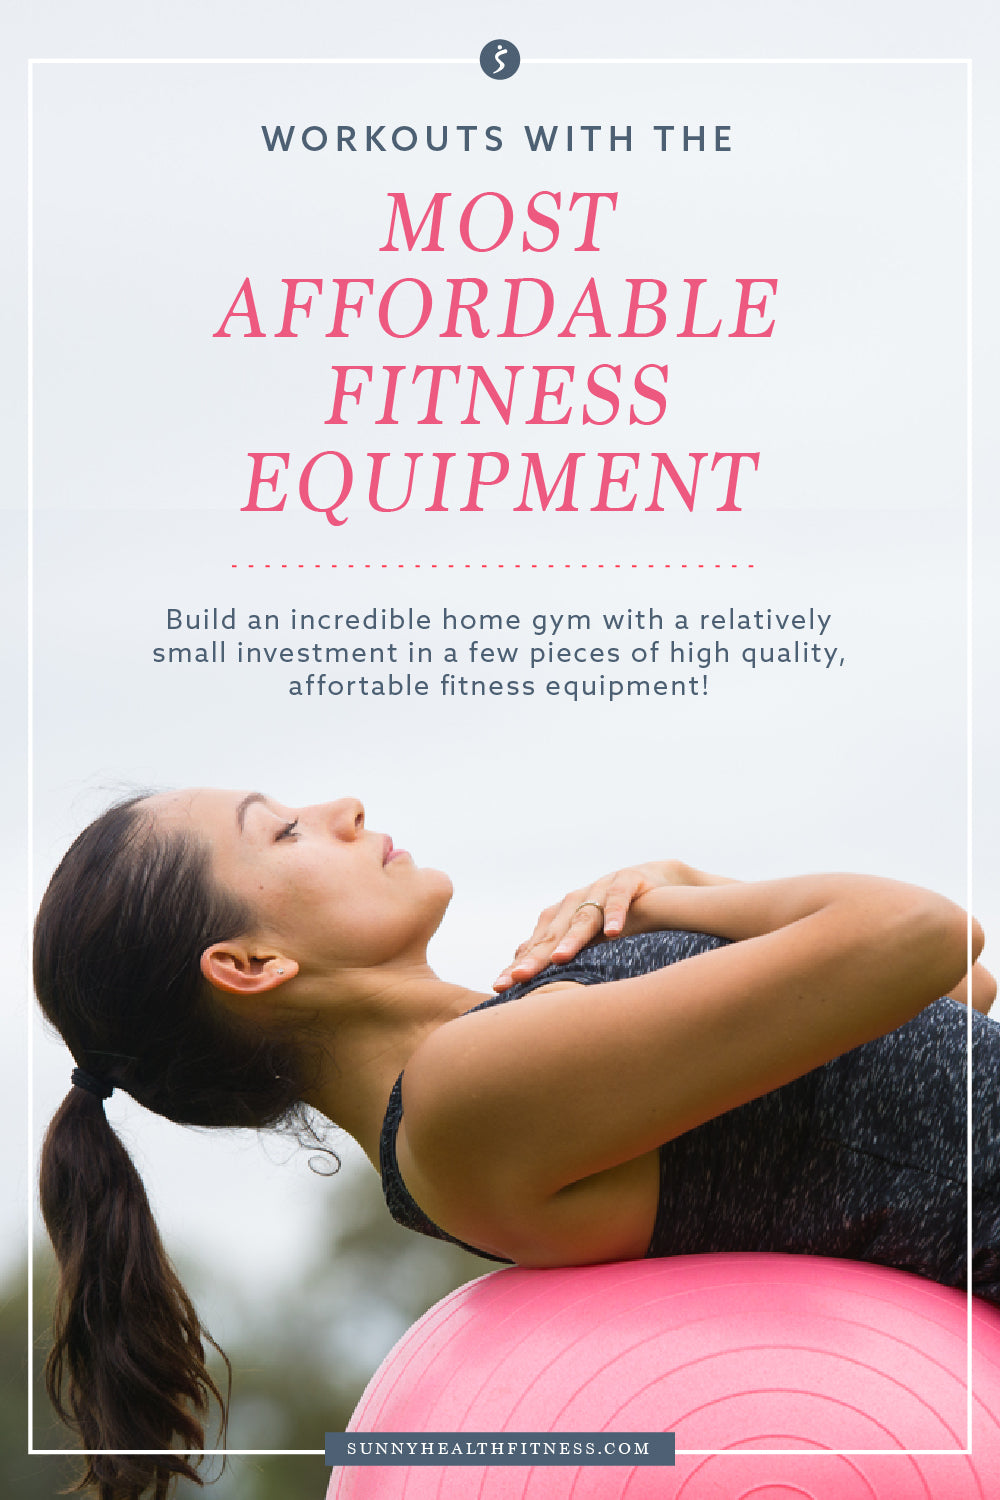 Workouts with the Most Affordable Fitness Equipment Infographic